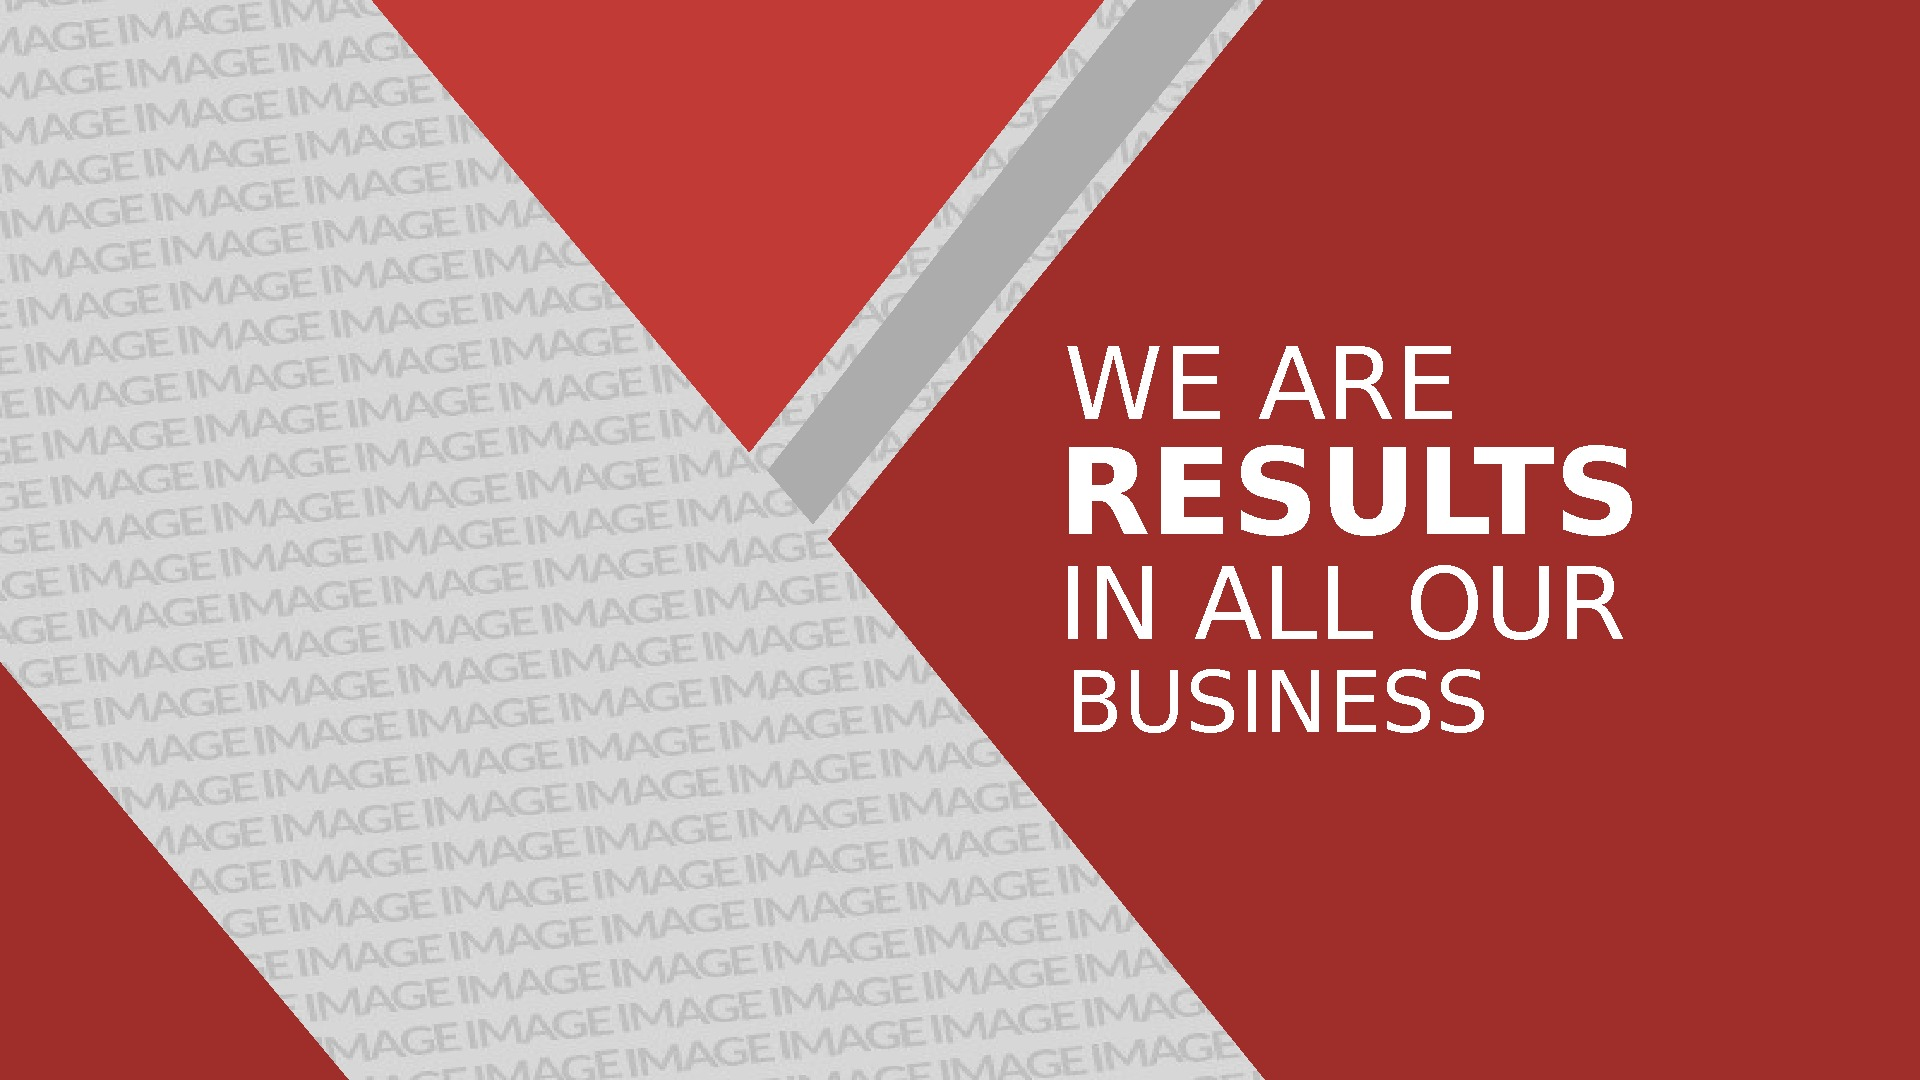 WE ARE RESULTS IN ALL OUR BUSINESS